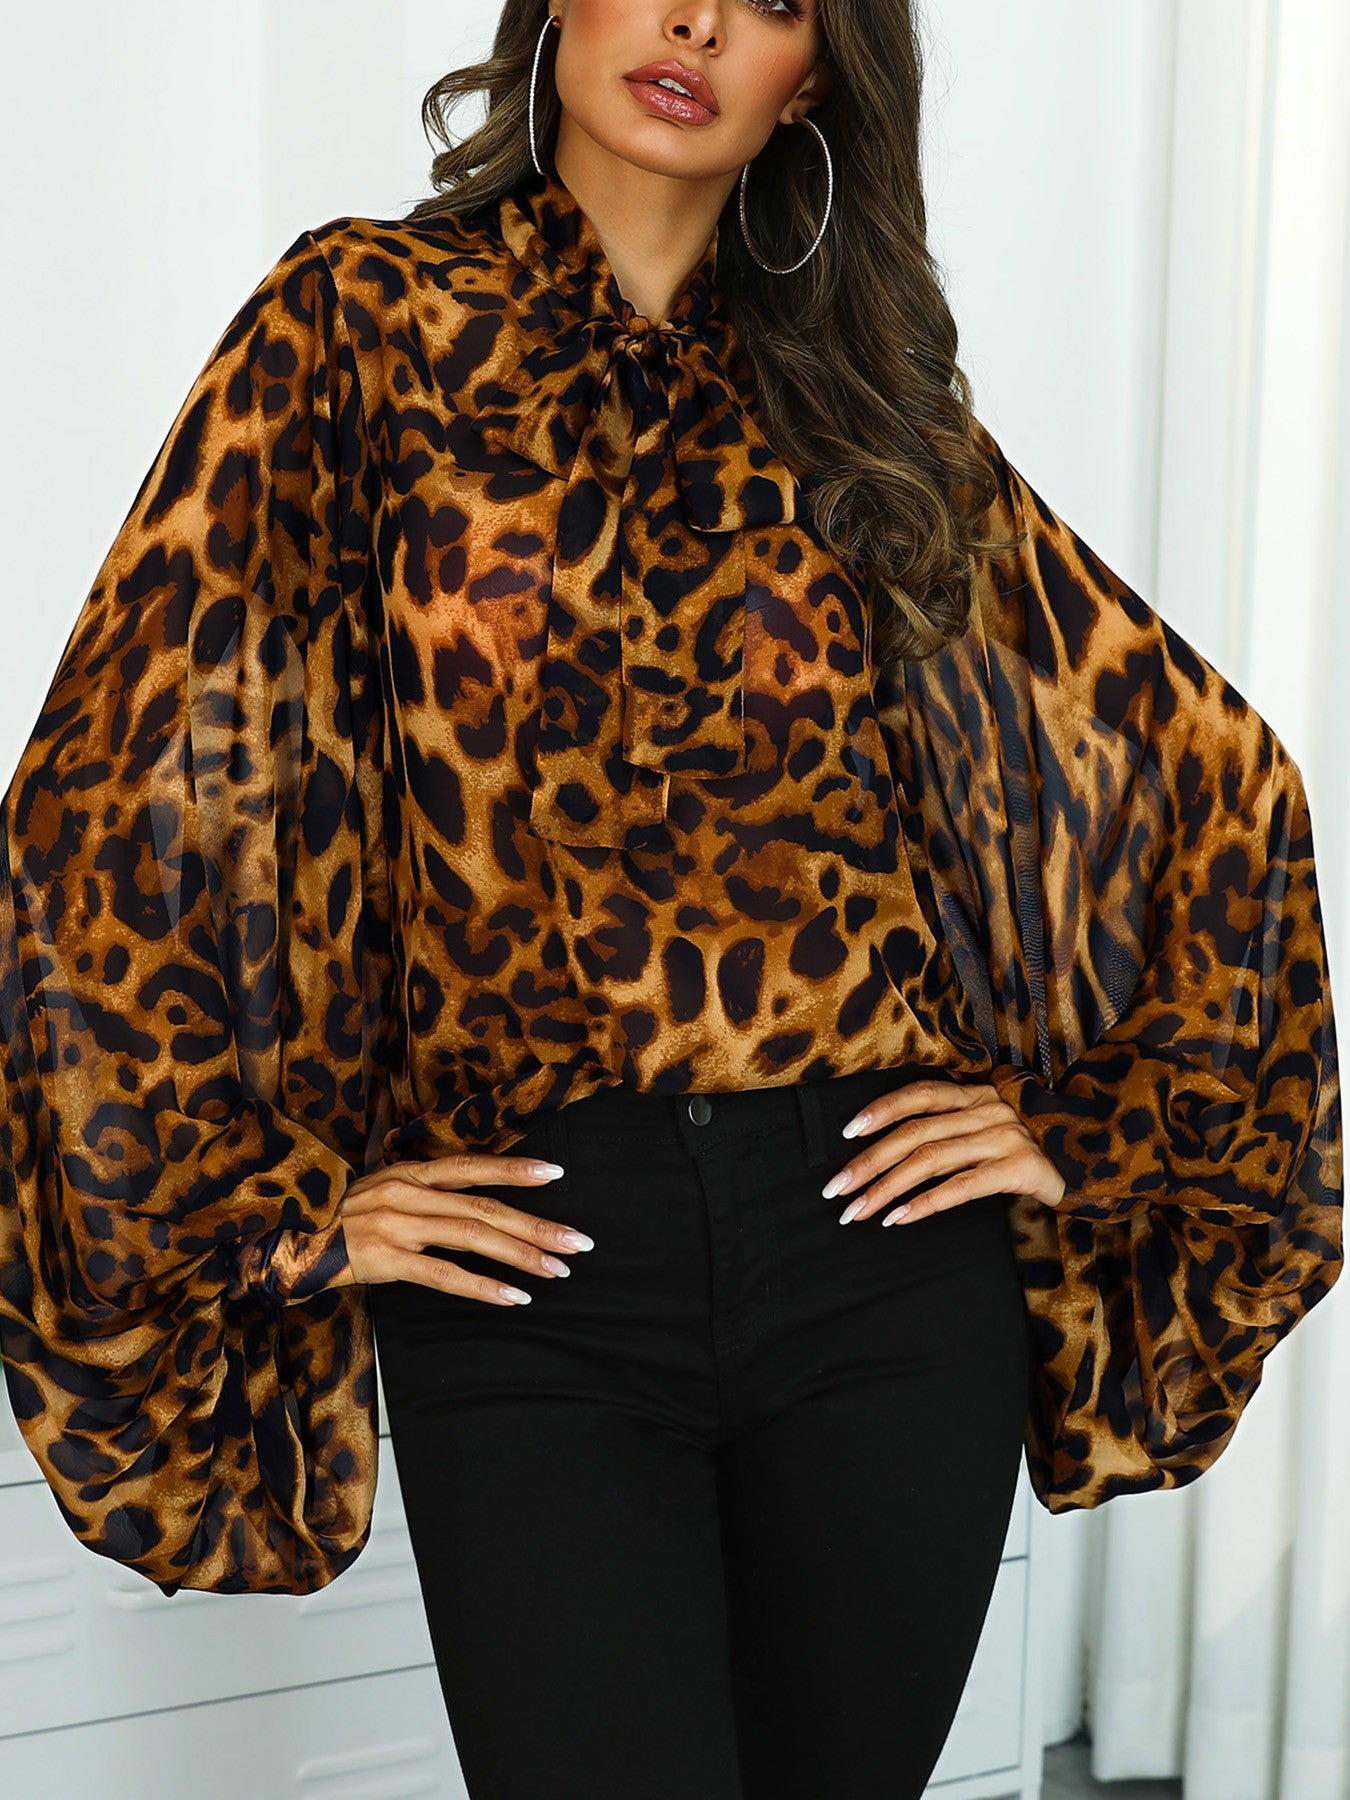 Leopard Print Tied Neck Lantern Sleeve Blouse - DadHats2ow6ix